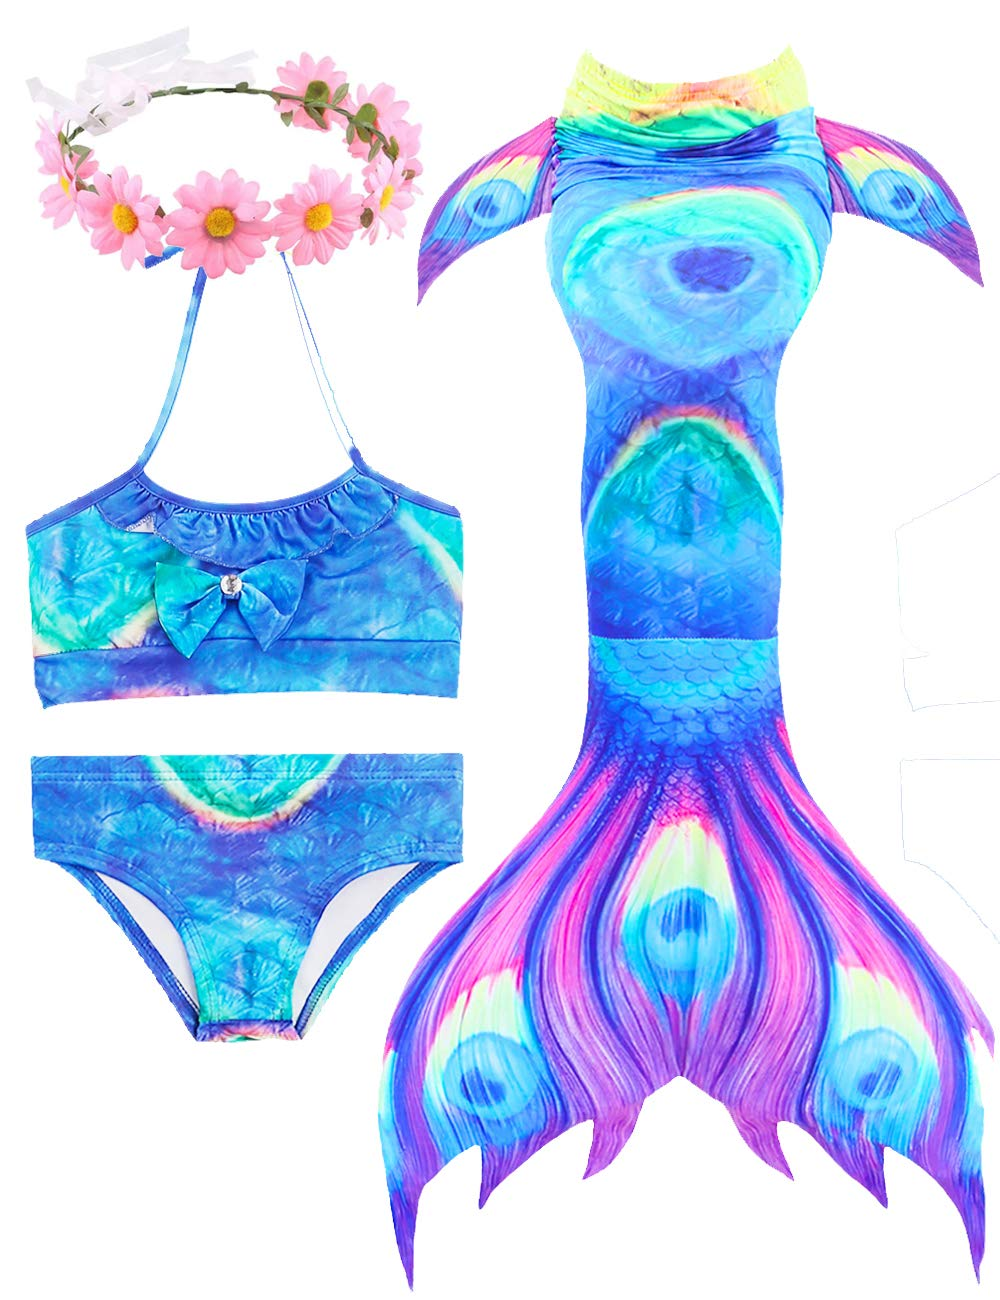 3 Pcs Girls Swimsuit Bikini Mermaid Tails for Swimming Can Add Monofin Prime Deals Summer (Large7-8Y 130, Seablue)